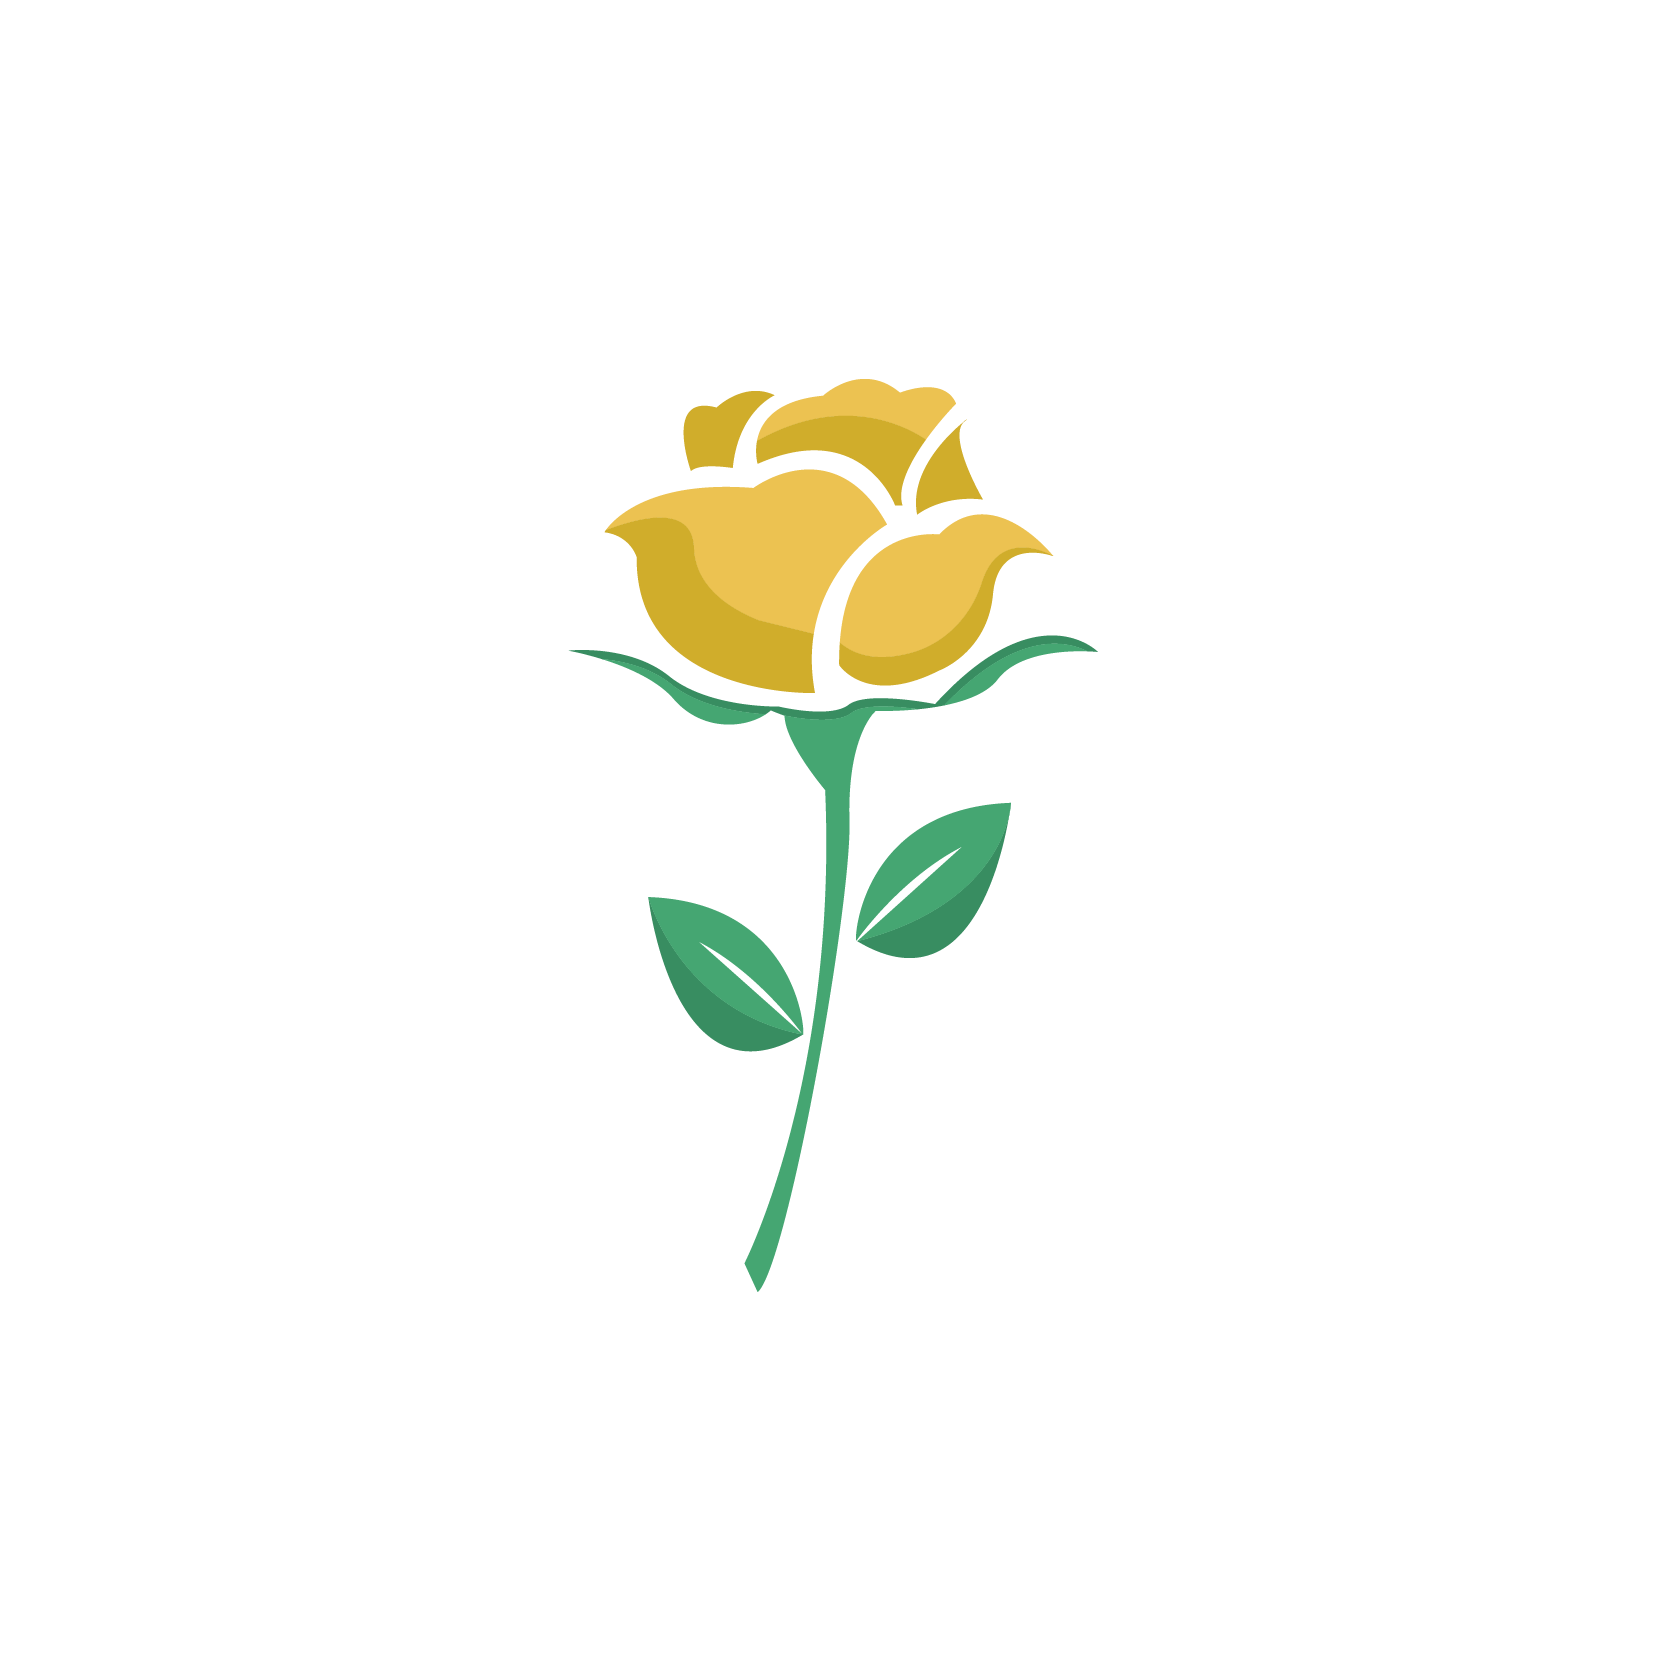 yellow rose graphic